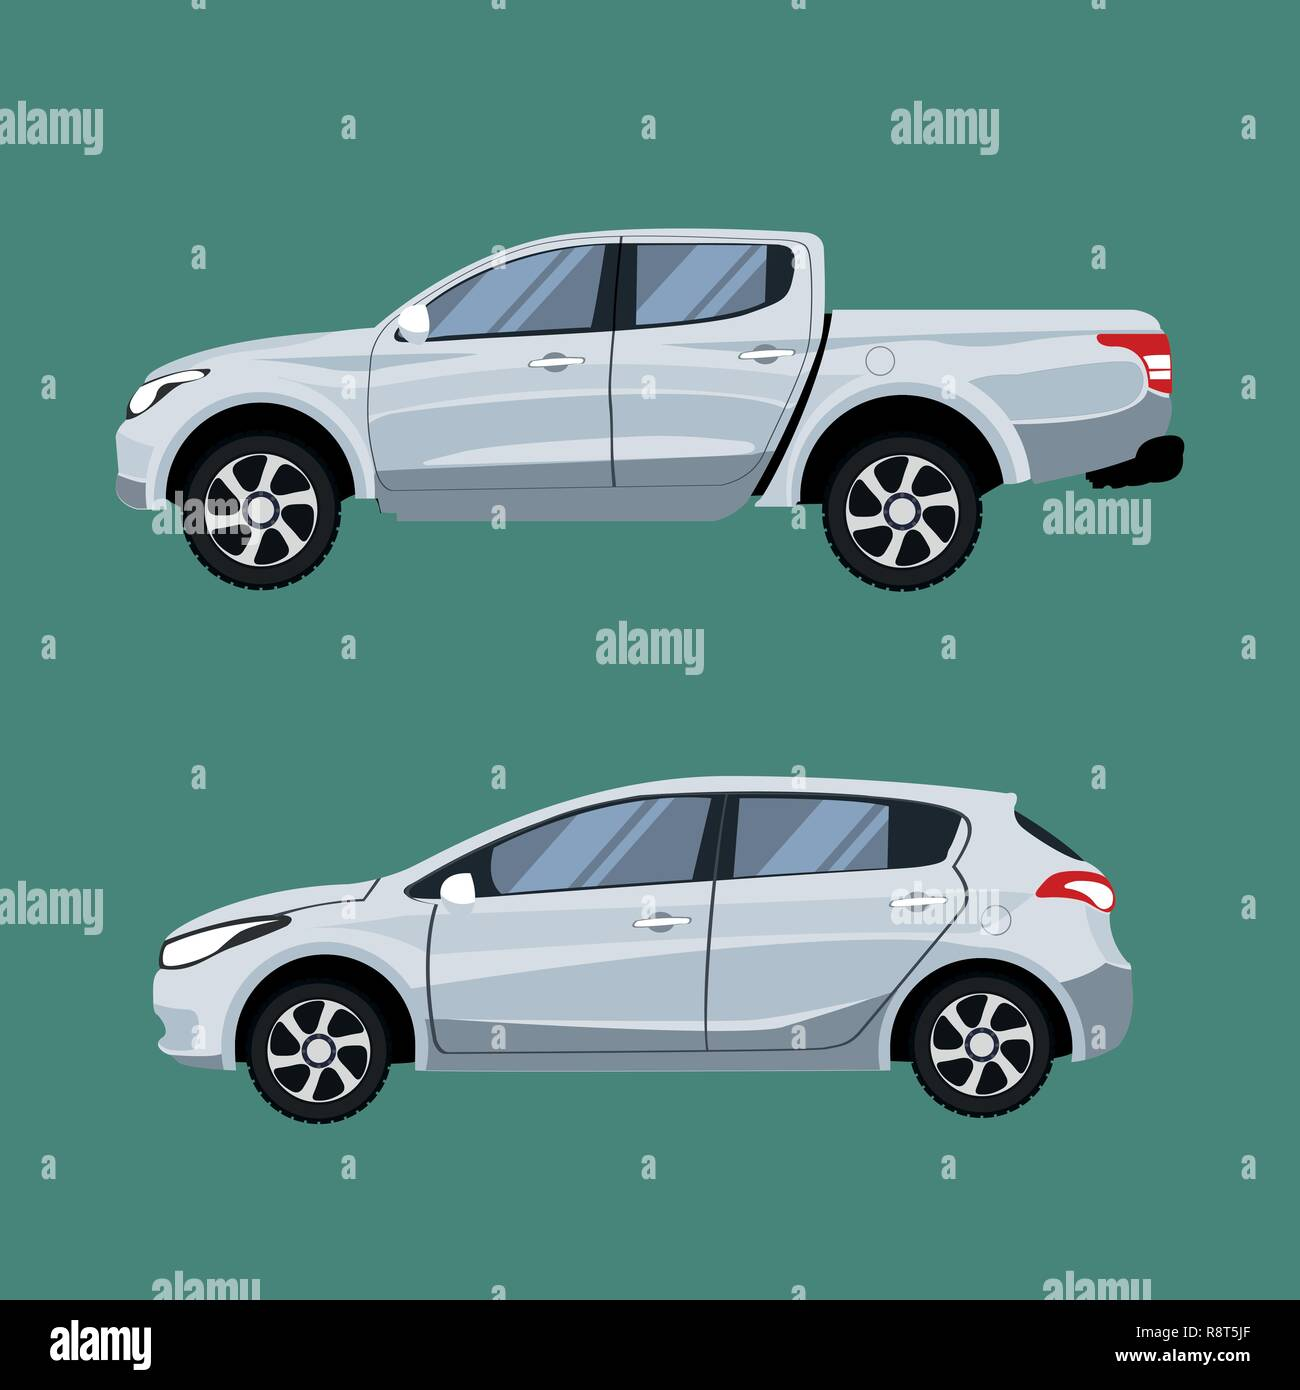 Set of vehicles pickup truck and Hatchback in side view. - Stock Image